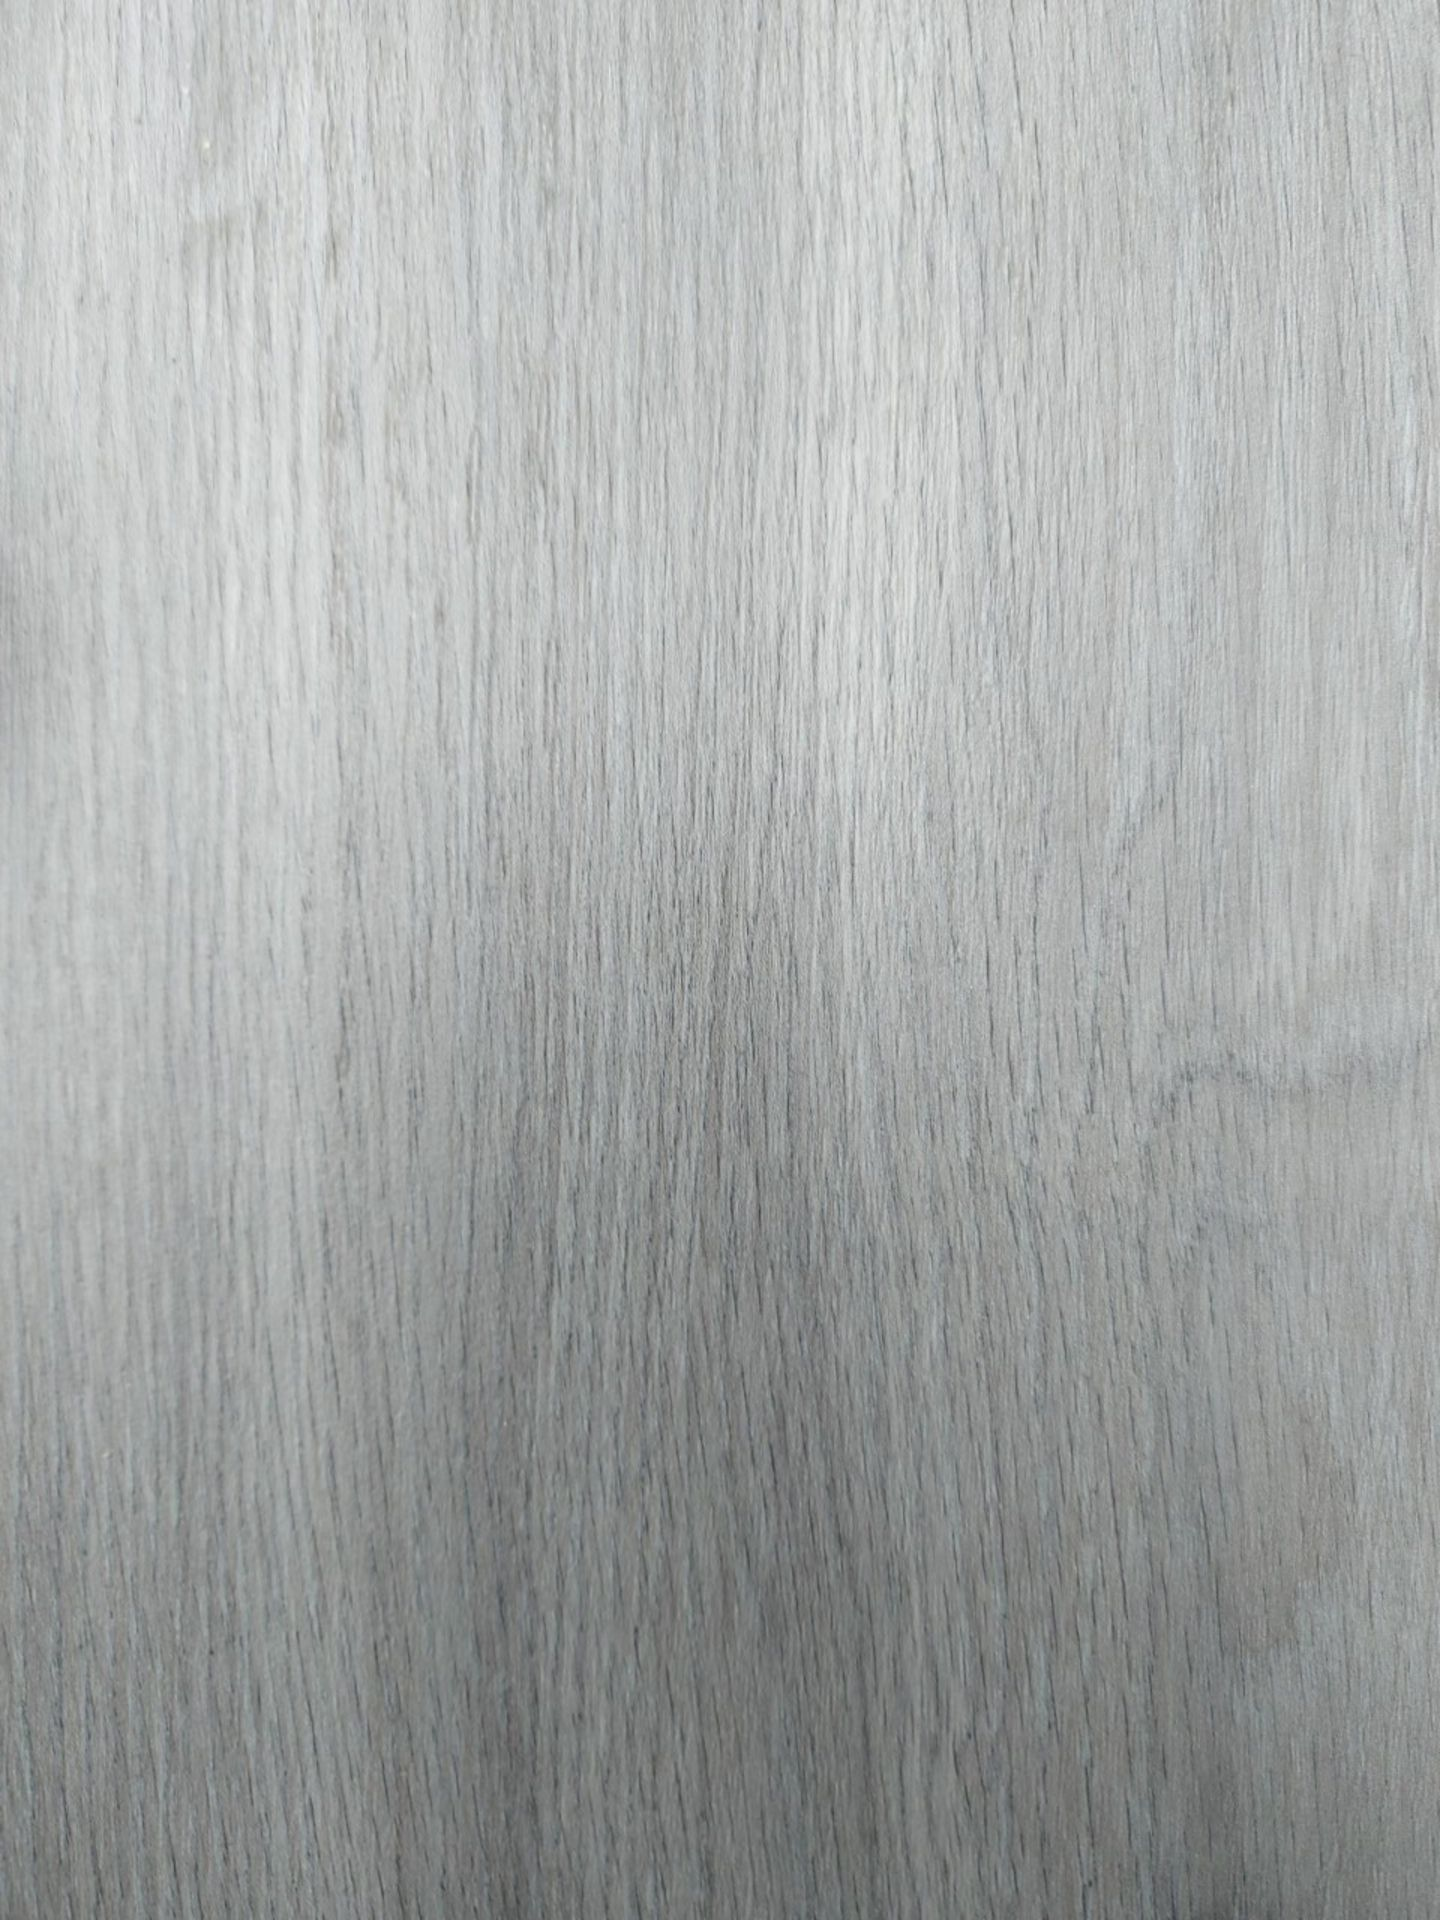 PALLET TO CONTAIN 11 NEW SEALED PACKS OF Grey Oak effect Luxury vinyl click flooring. EACH PACK